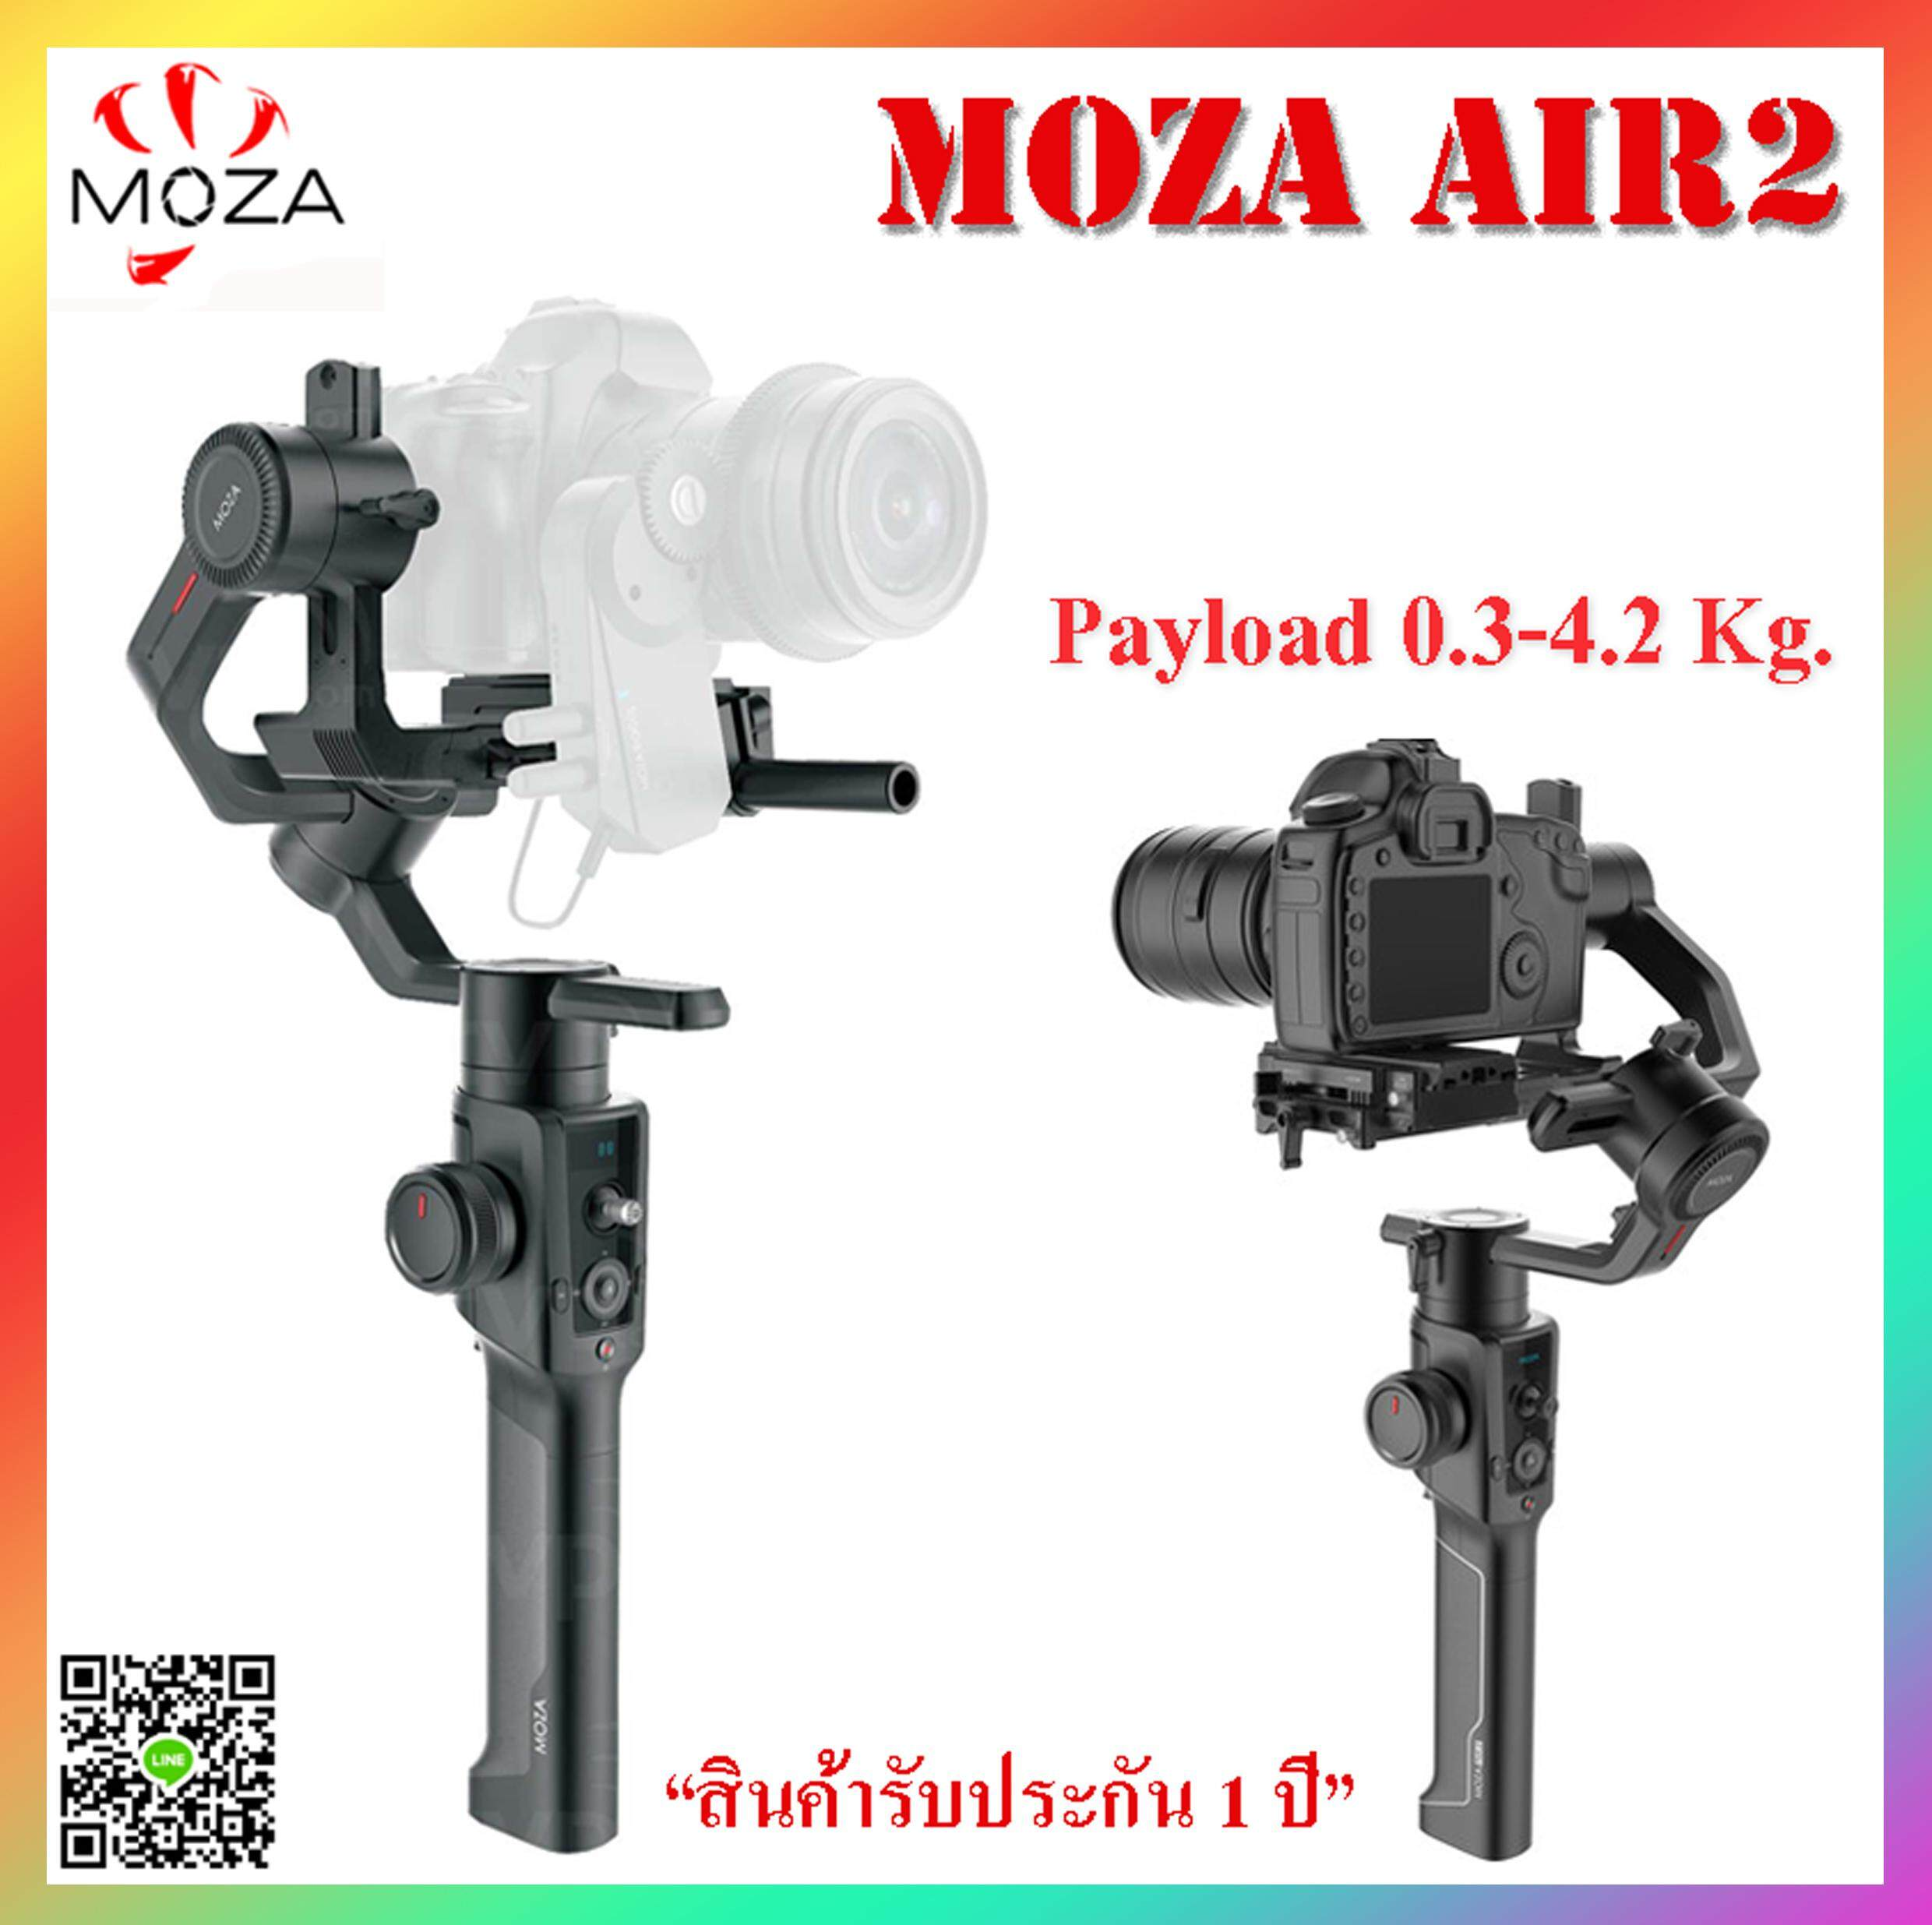 Moza Air 2 3-Axis Handheld Gimbal Stabilizer ไม้กันสั่น 3 แกน (รับประกันสินค้า 1 ปี).